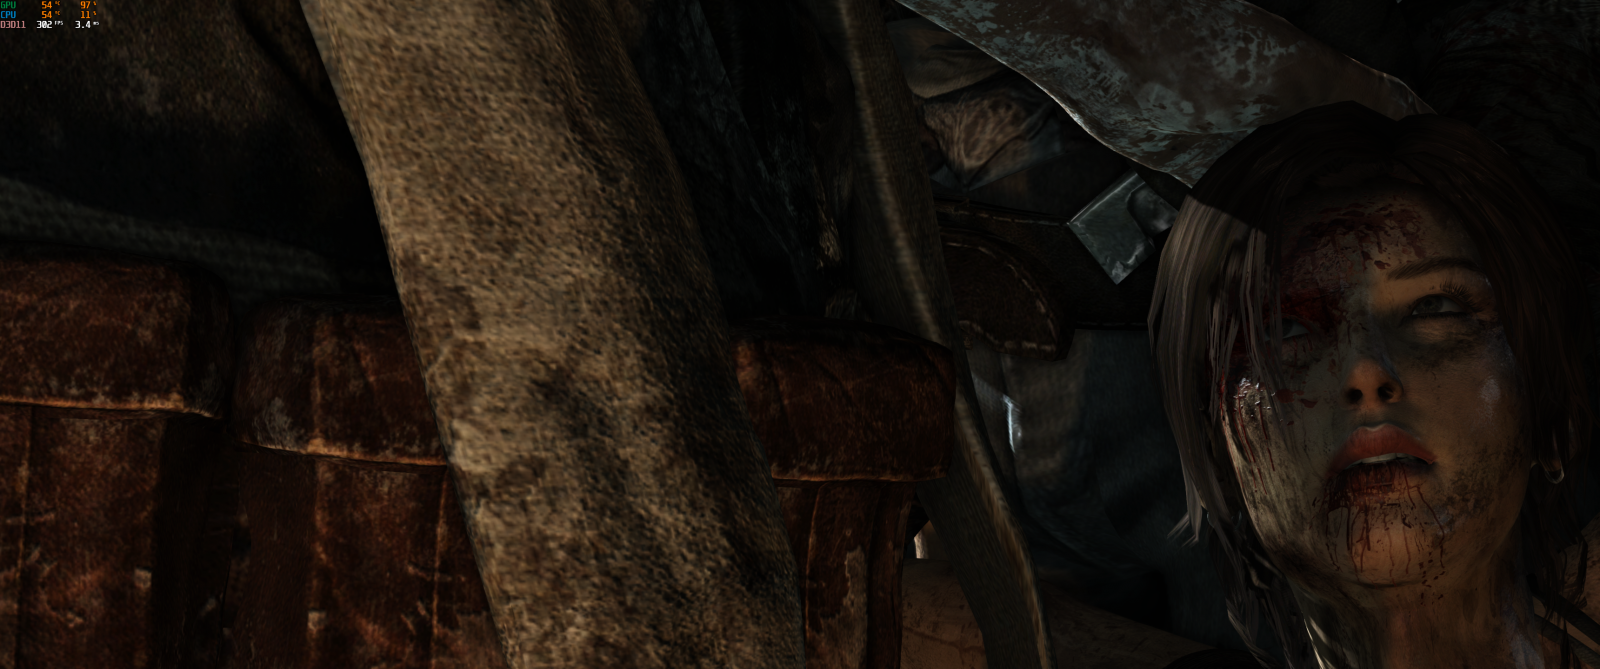 TombRaider_2021_06_26_16_26_22_857.png